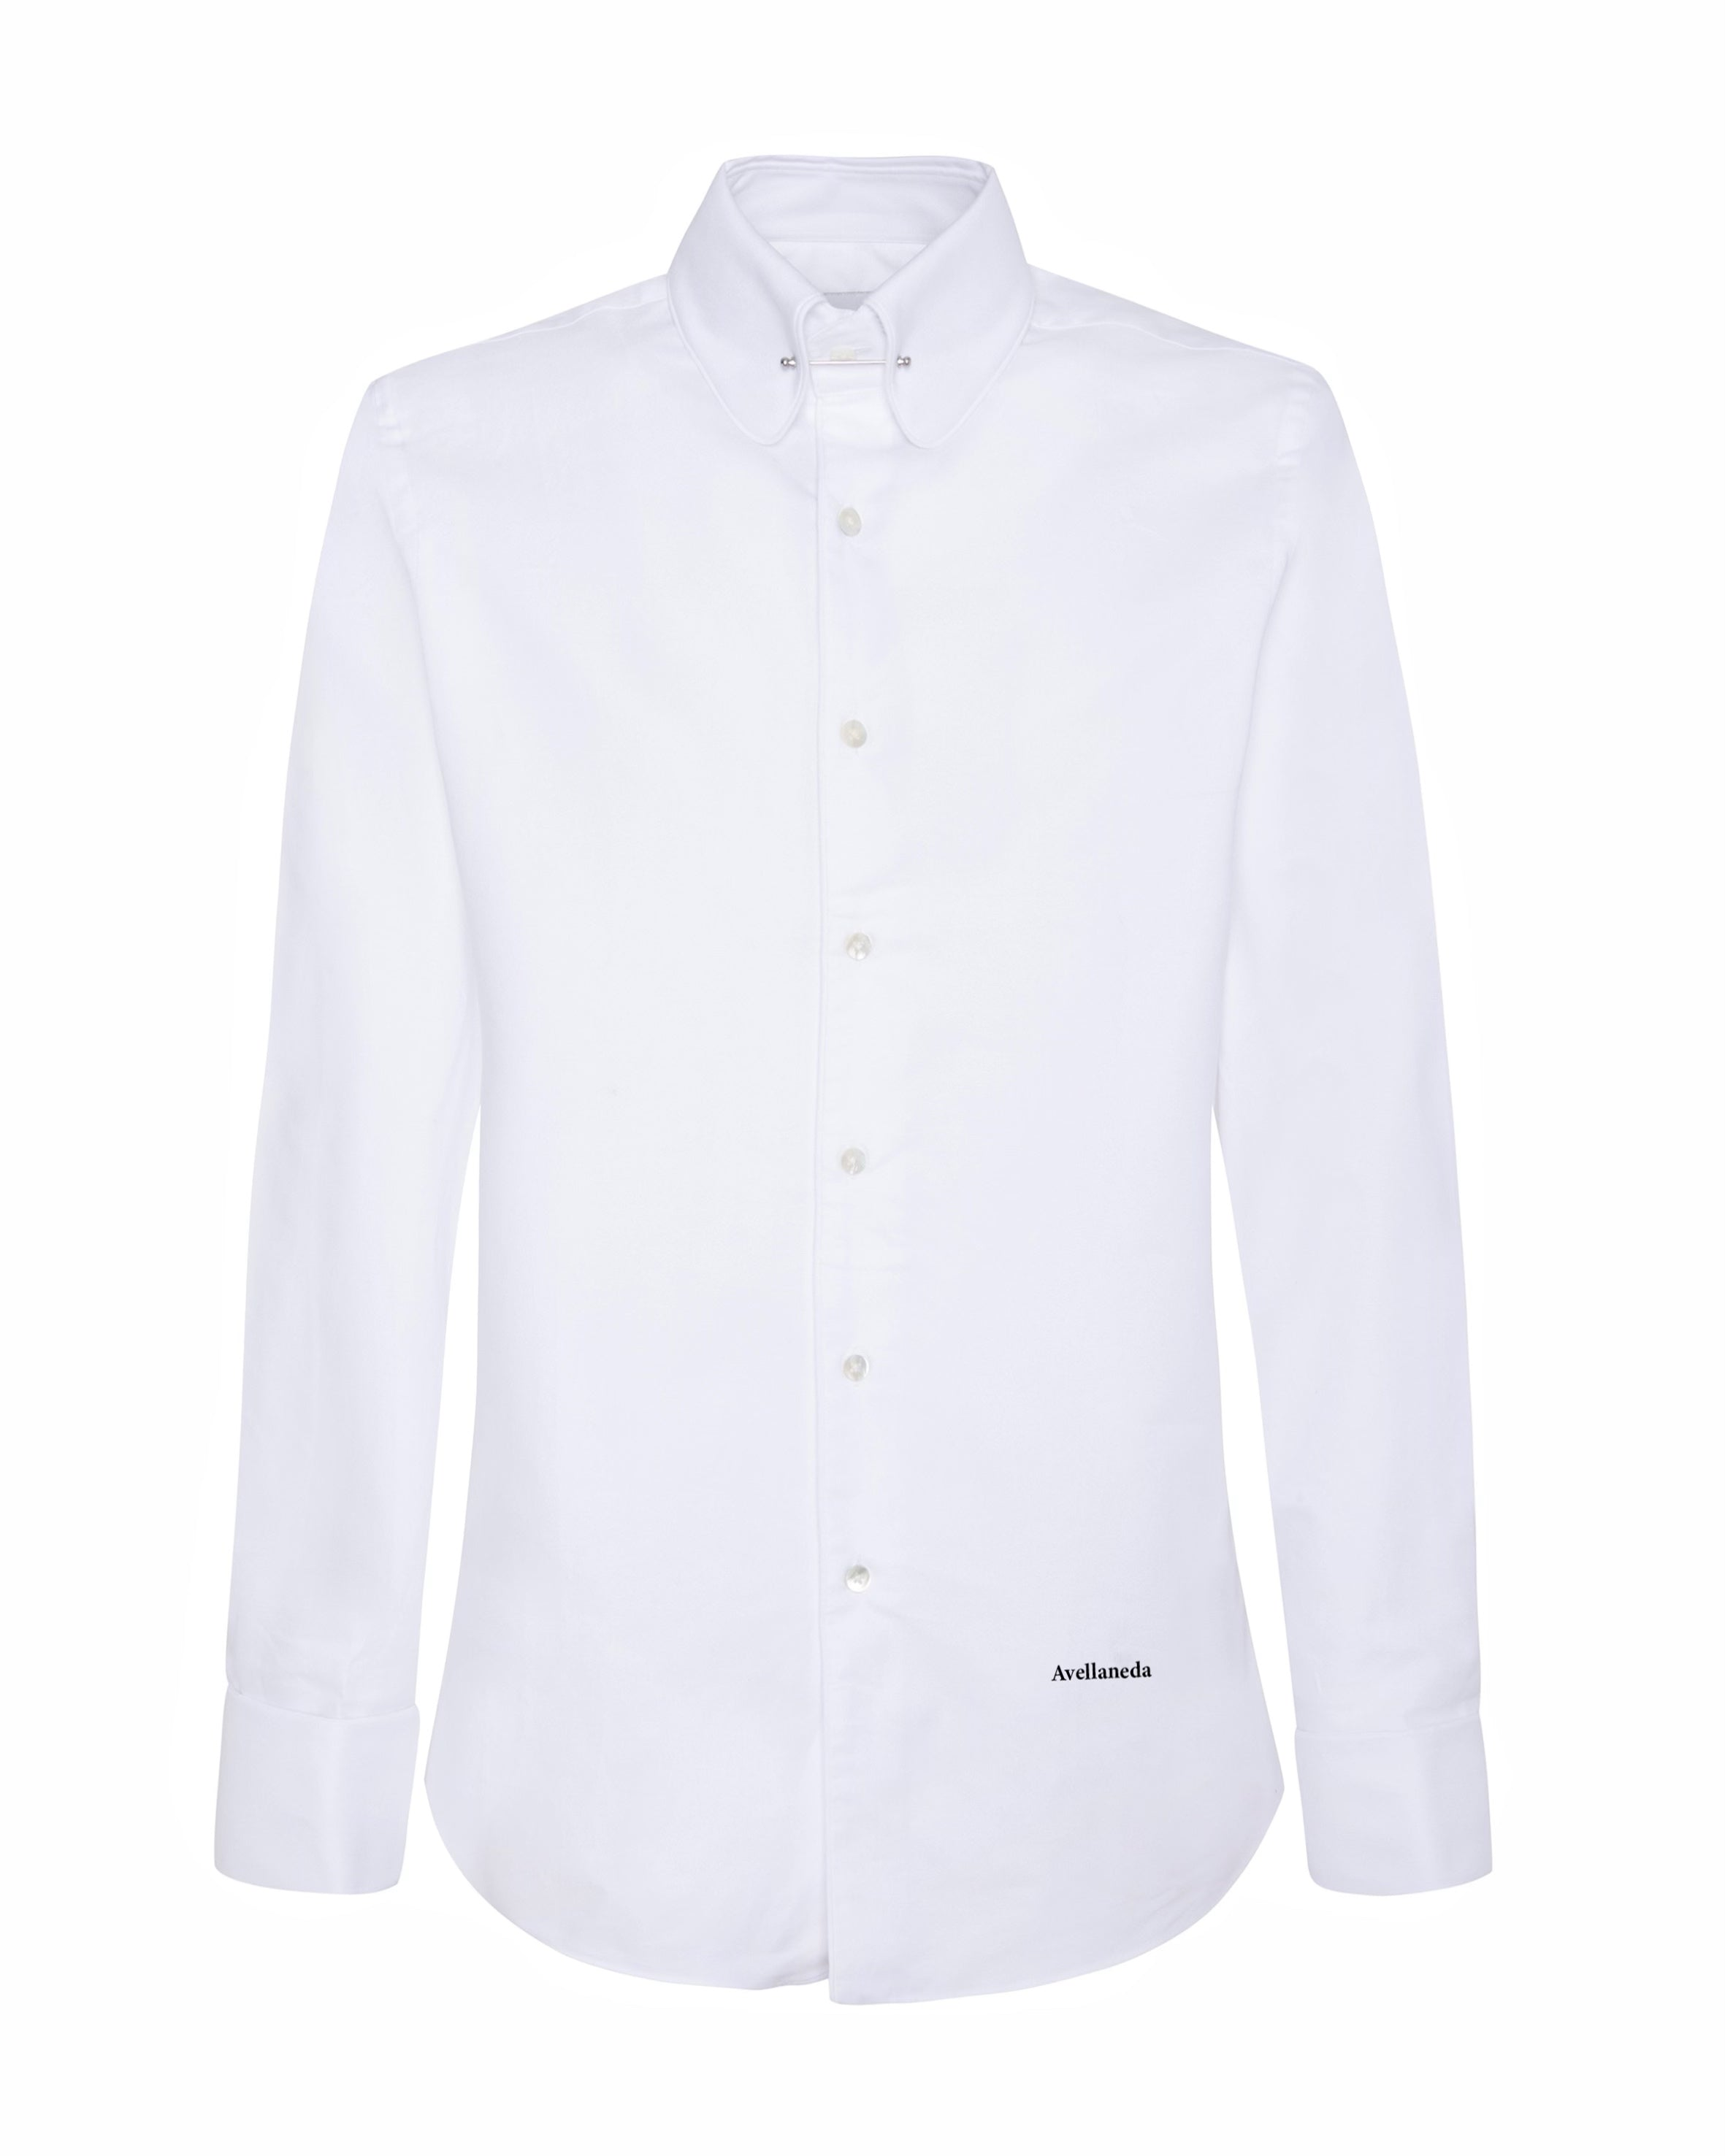 MEN'S COLLAR PIN SHIRT